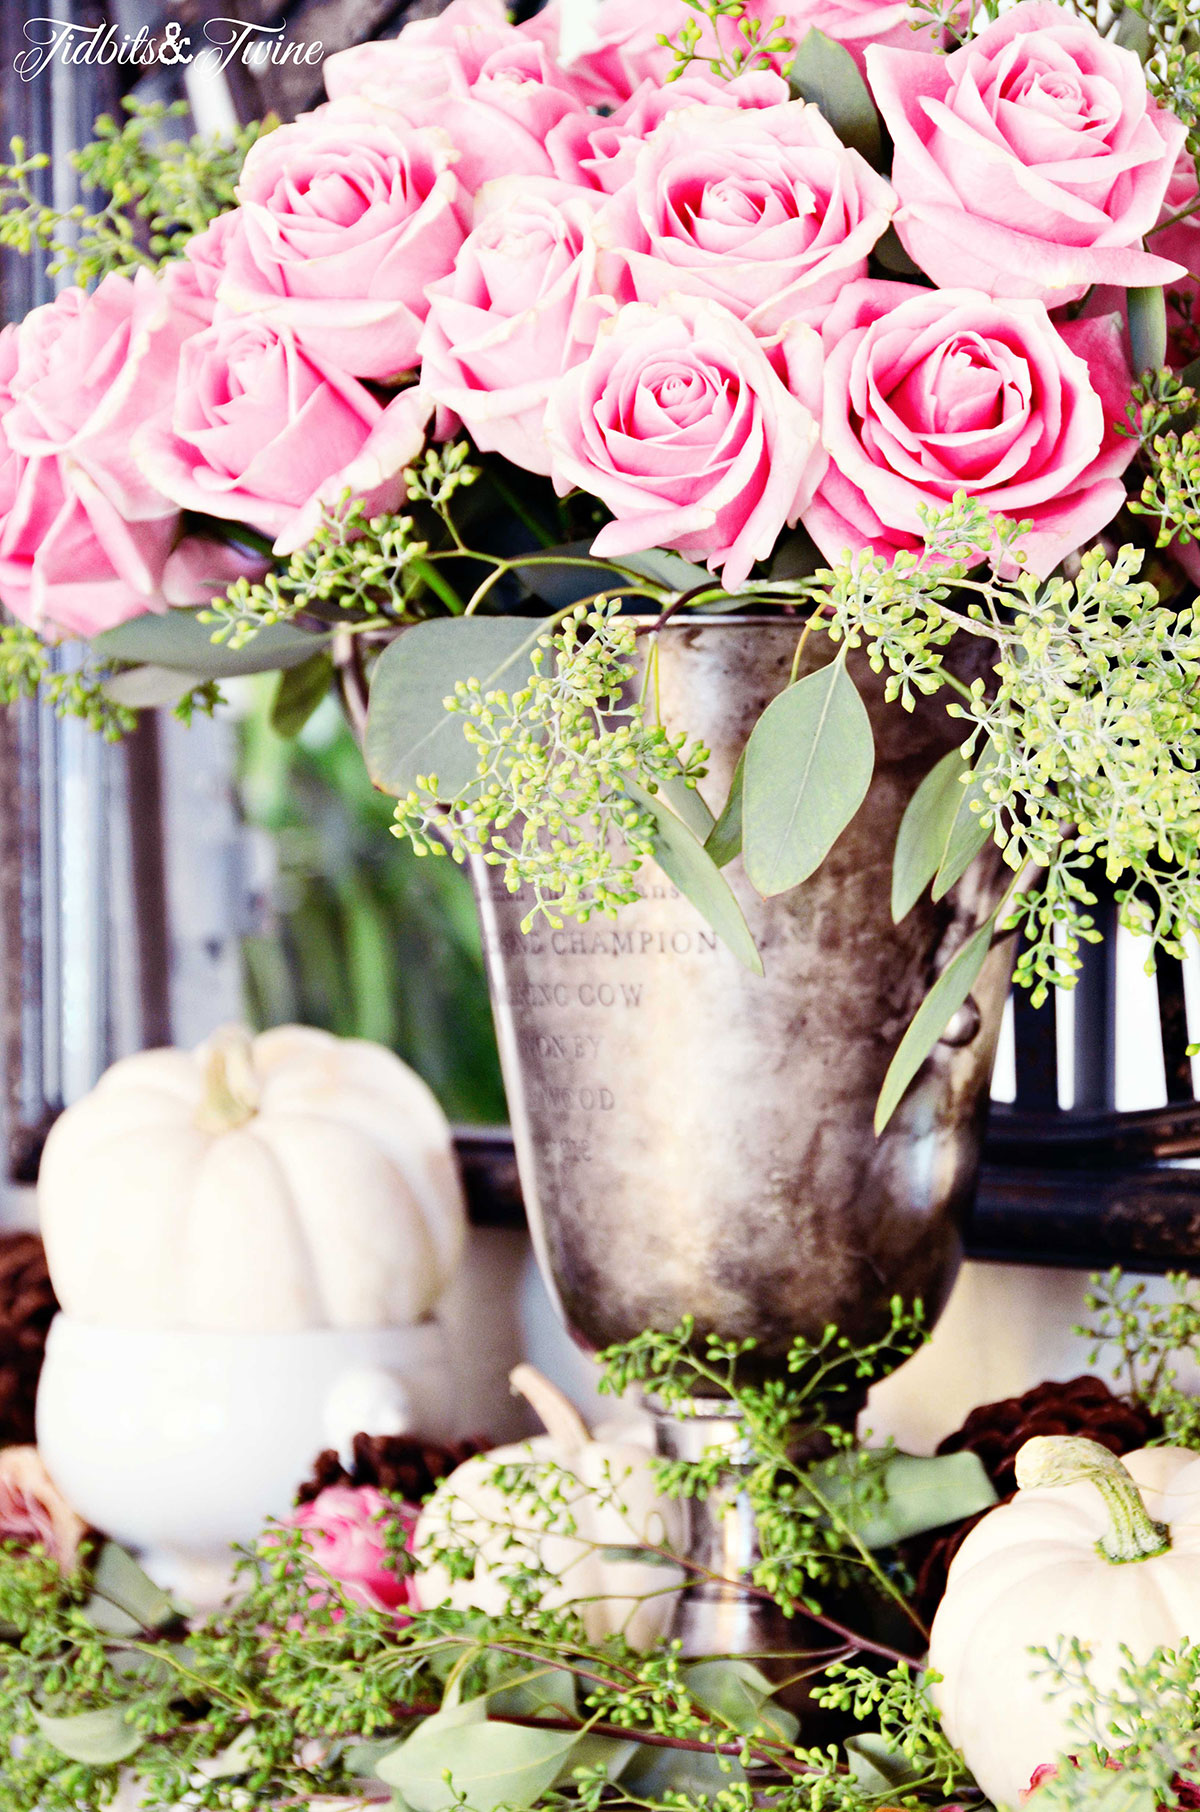 TIDBITSTWINE-Pink-Roses-and-White-Pumpkin-Mantel